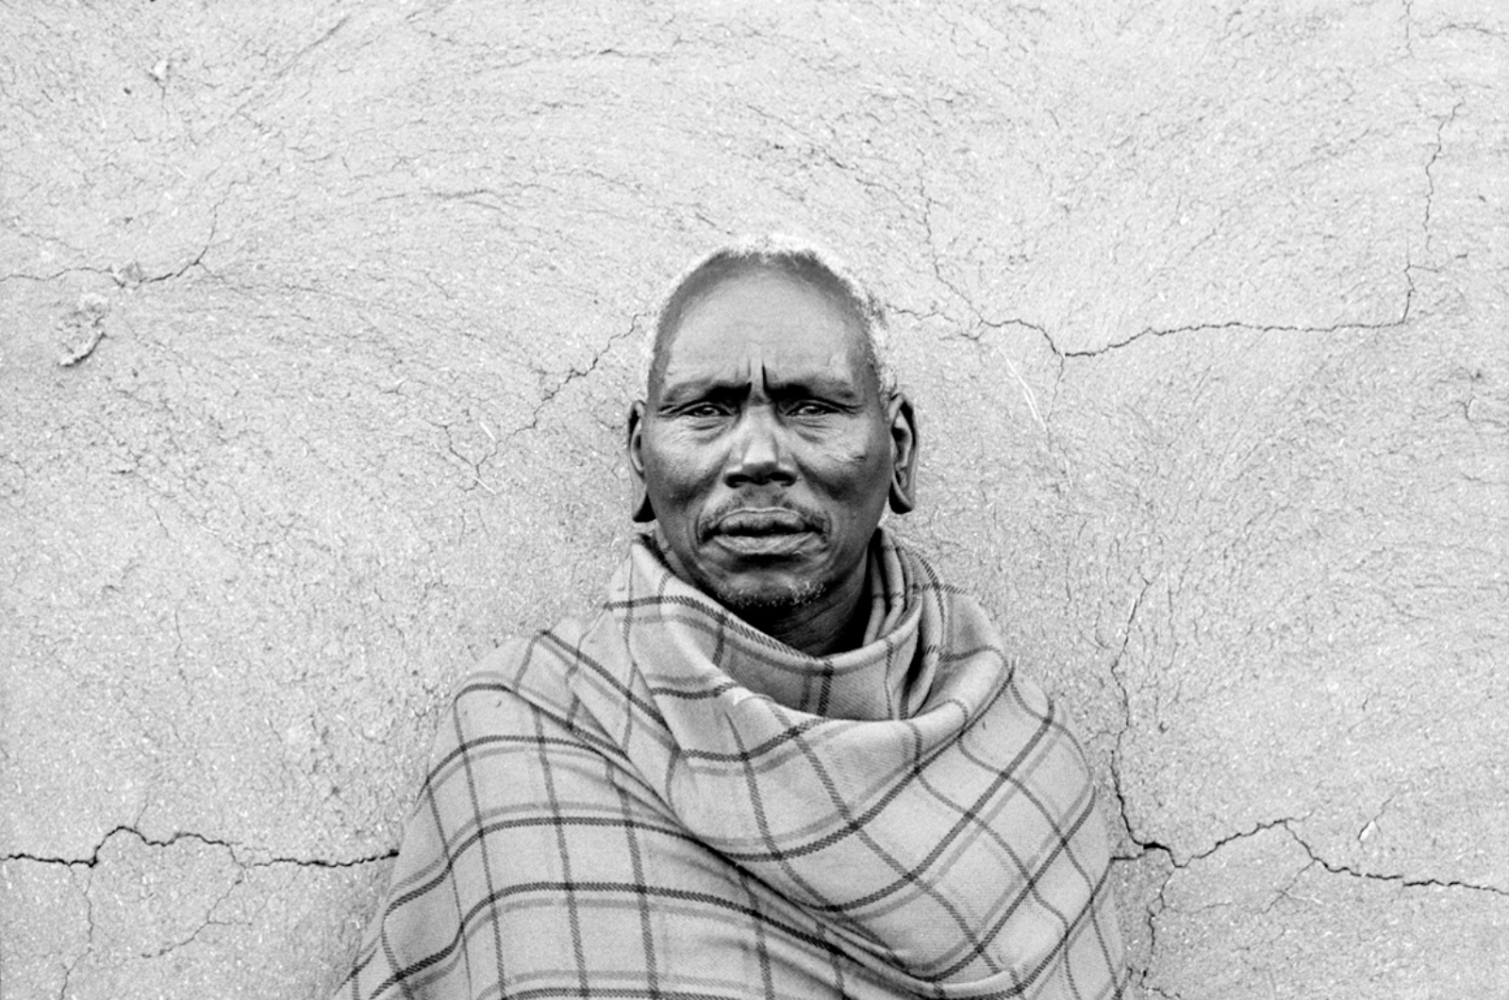 Portrait of a Man, Maasai Mara, Kenya, August 2002